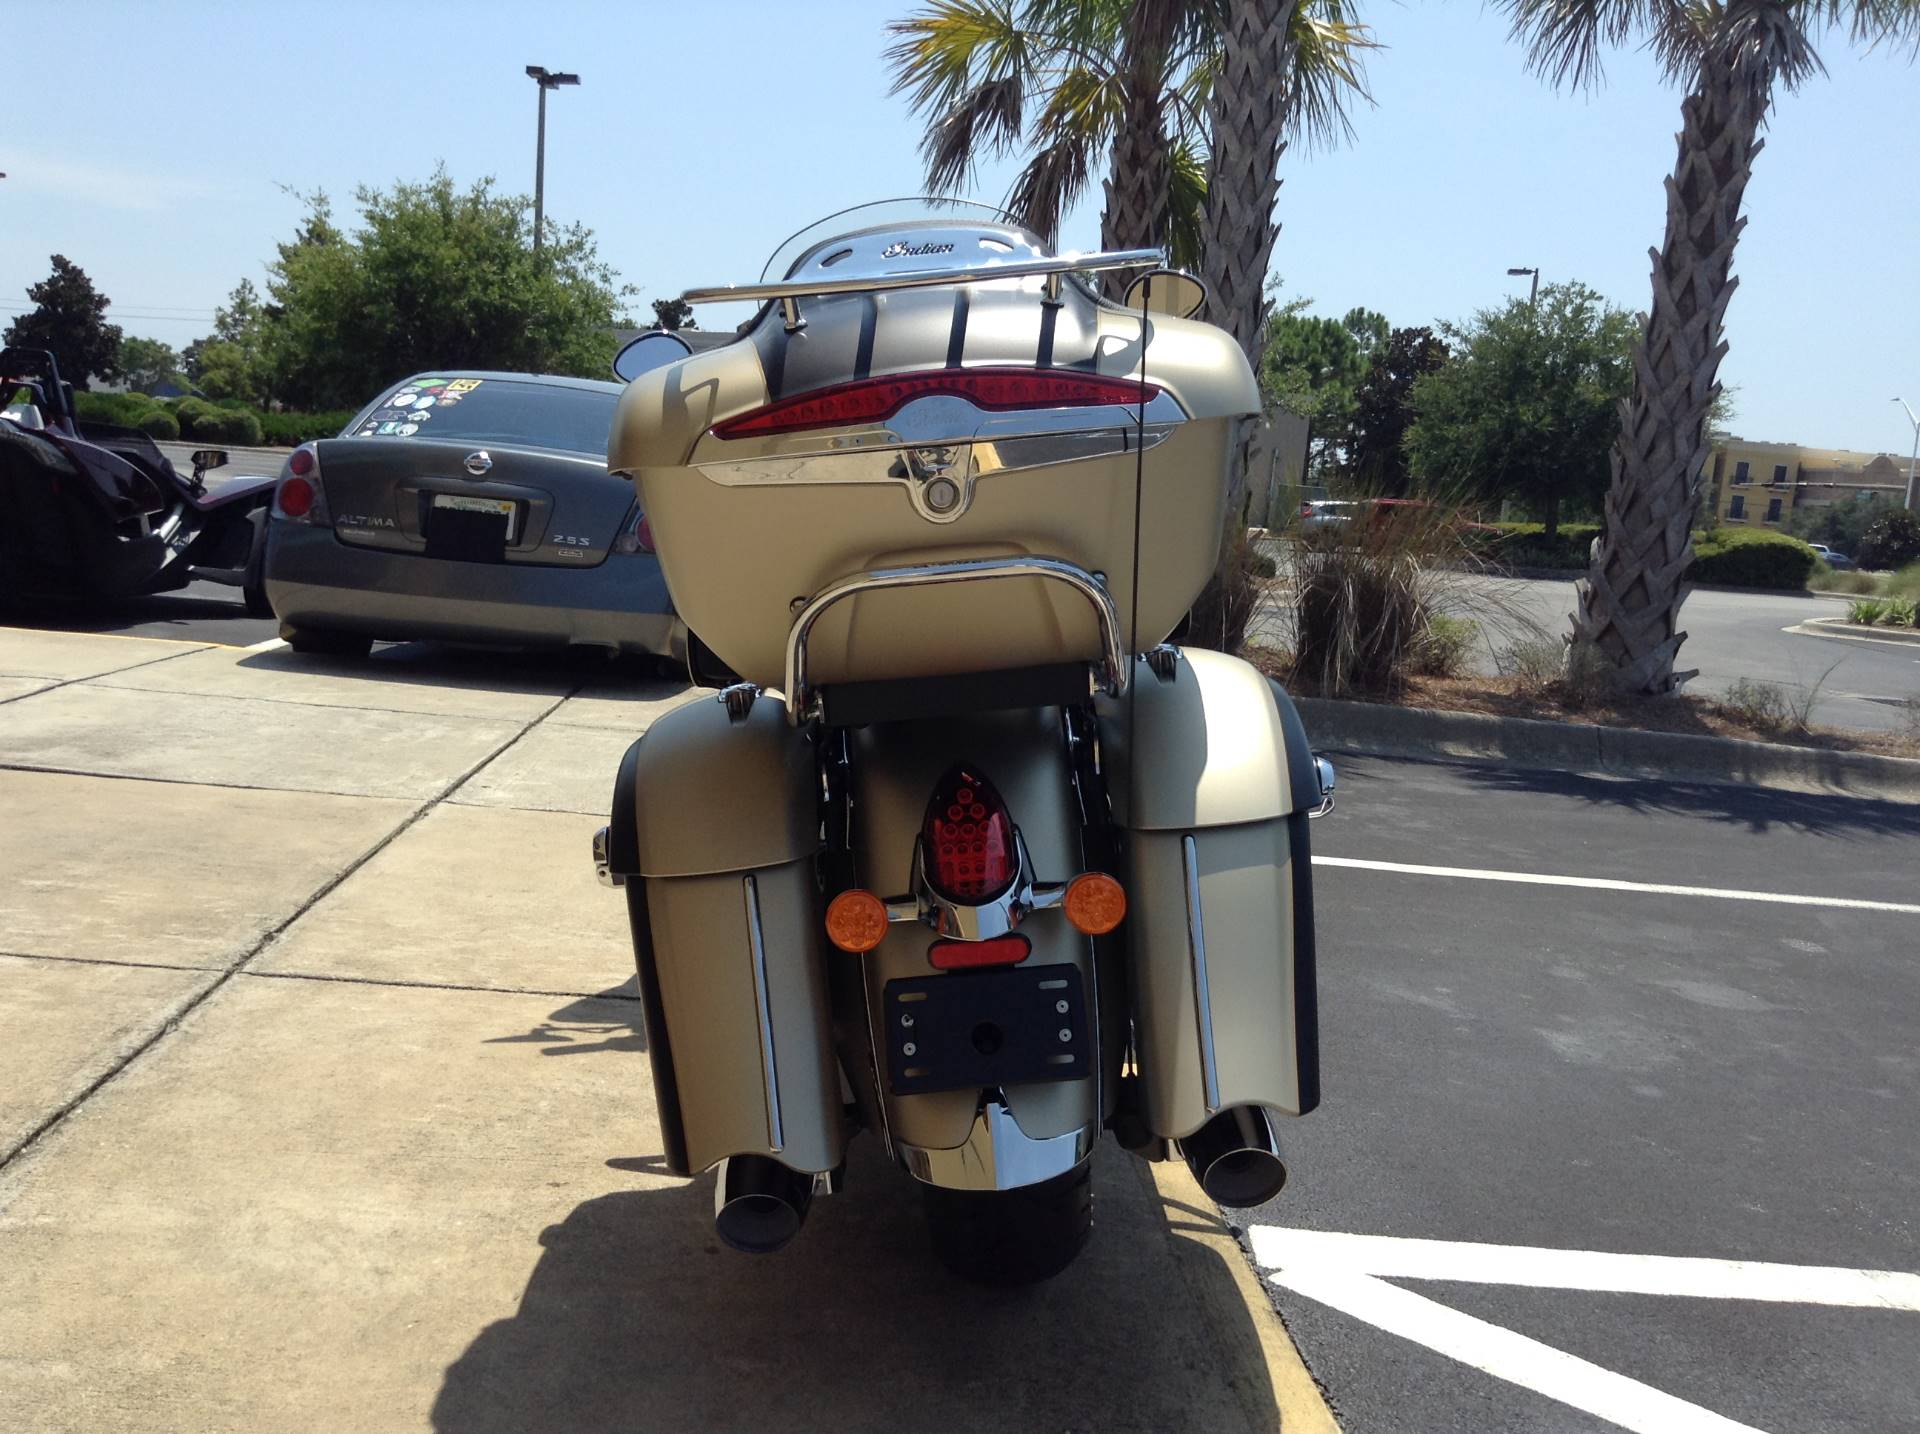 2019 Indian ROADMASTER in Panama City Beach, Florida - Photo 12